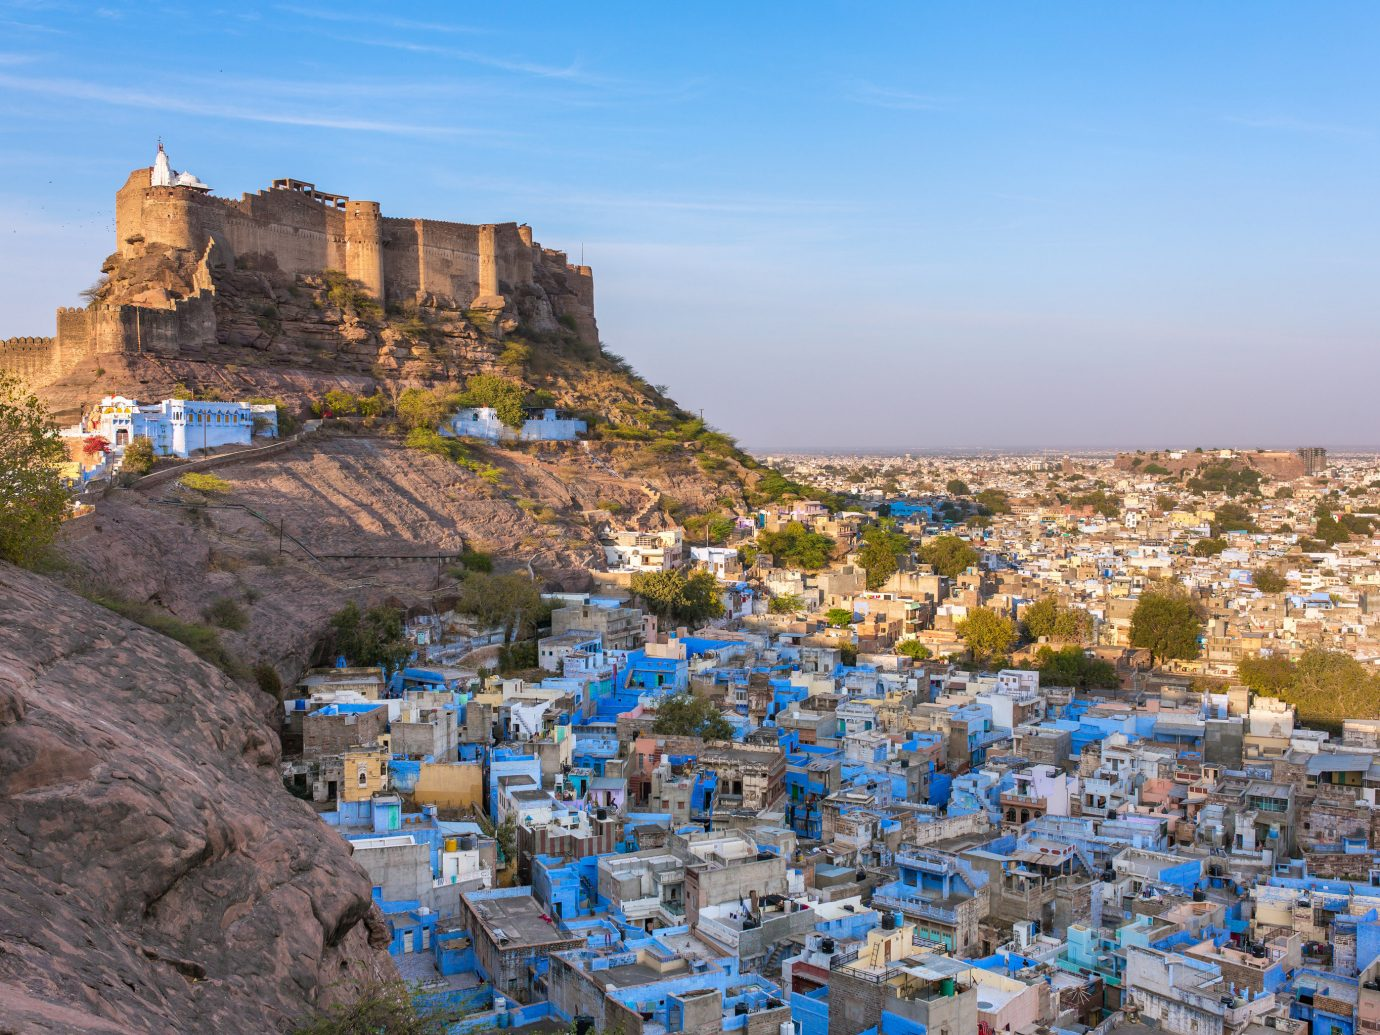 India Jaipur Jodhpur Trip Ideas outdoor sky City Town urban area rock Village Sea Coast tourism terrain tree mountain canyon hillside